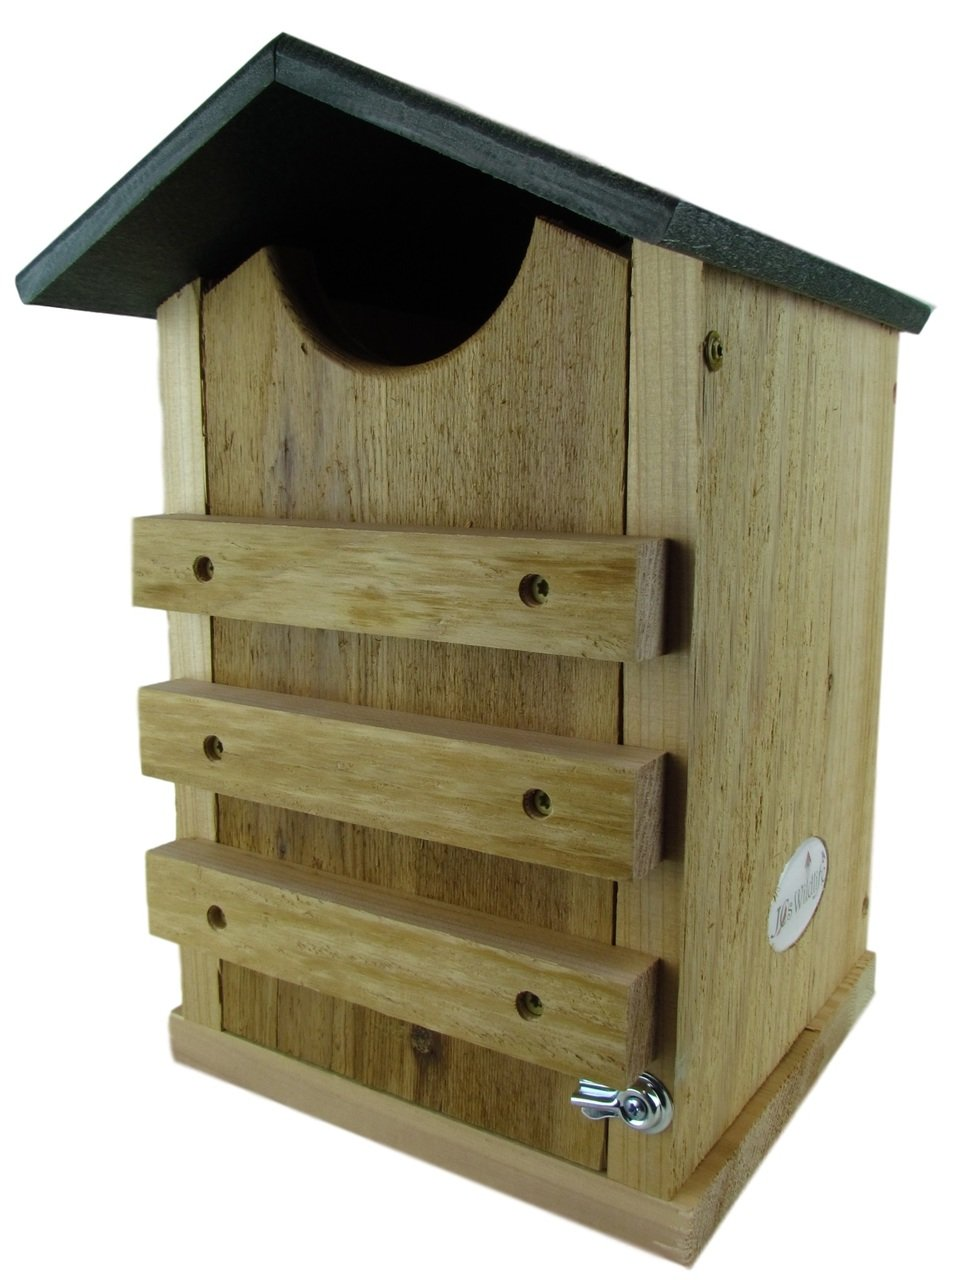 JCs Wildlife Screech Owl or Saw-Whet Owl House Cedar Nesting Box with Poly Lumber Roof